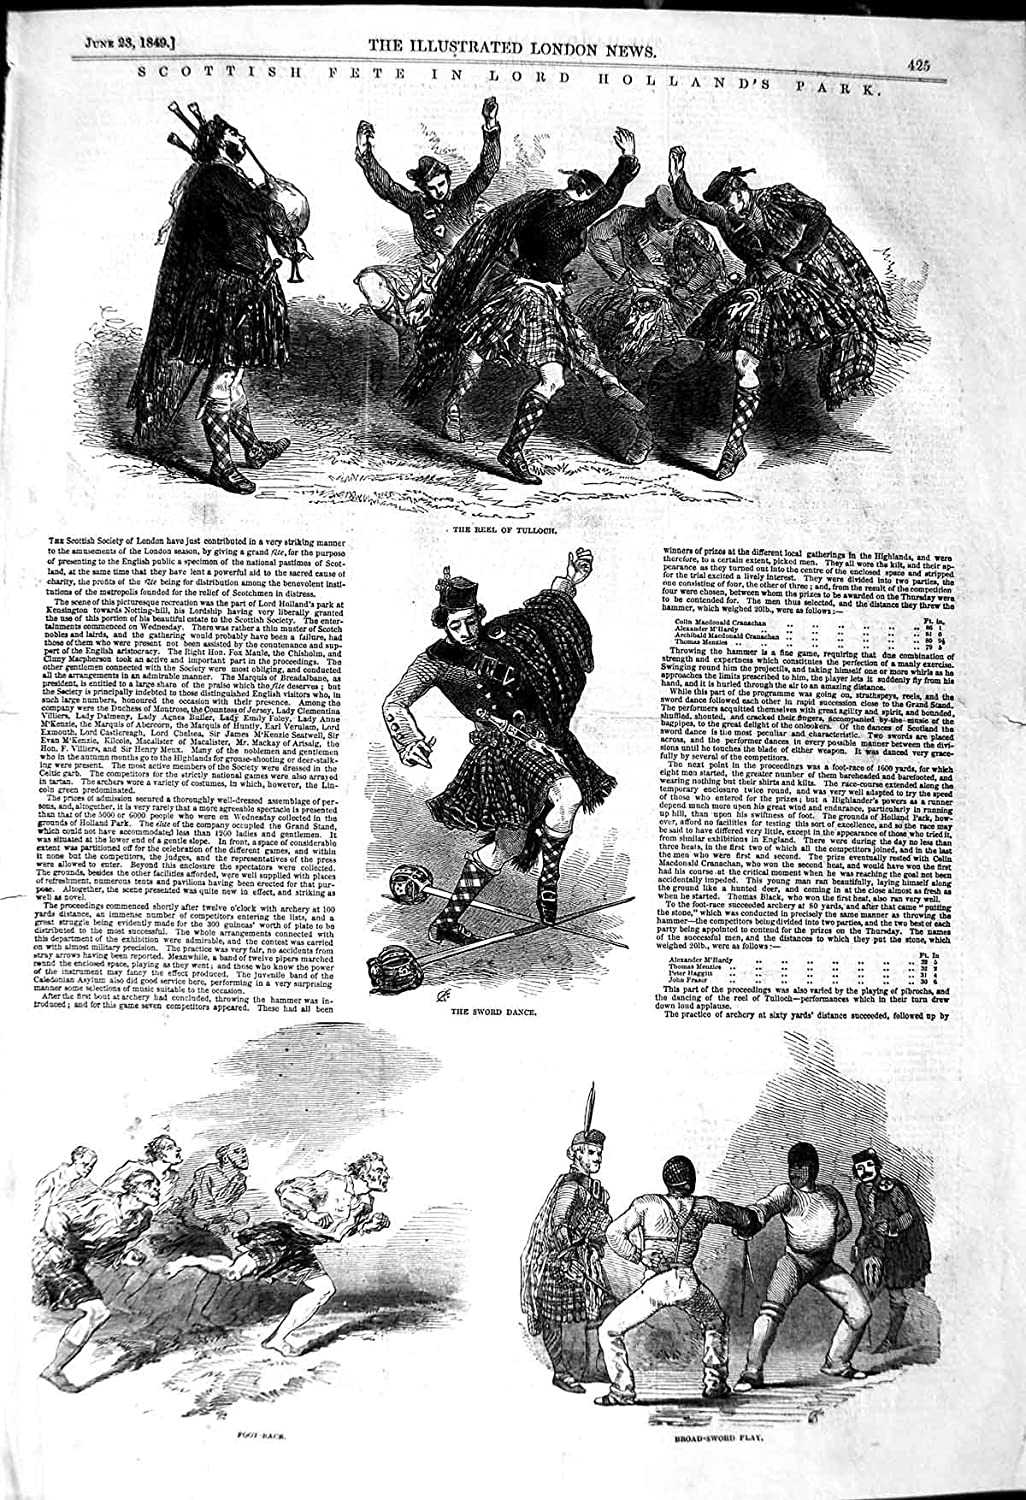 Antique Print 1849 Lord Holland'S Park Scottish Dancing Reel Sword 425P114 old-print P1140849425